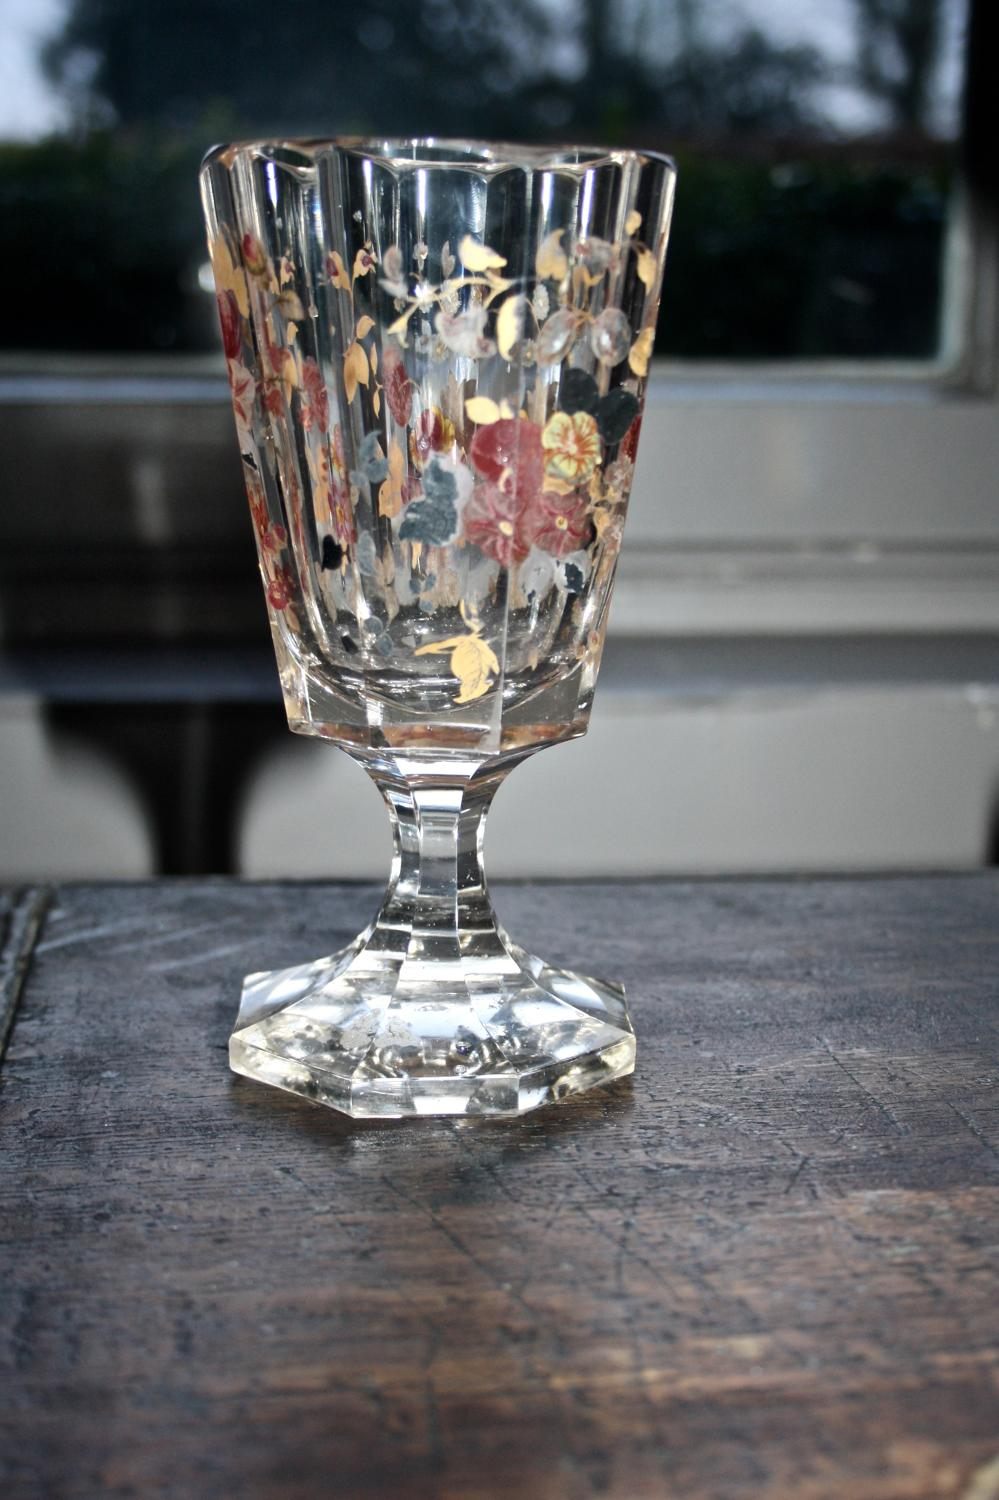 19th century floral glass/vase